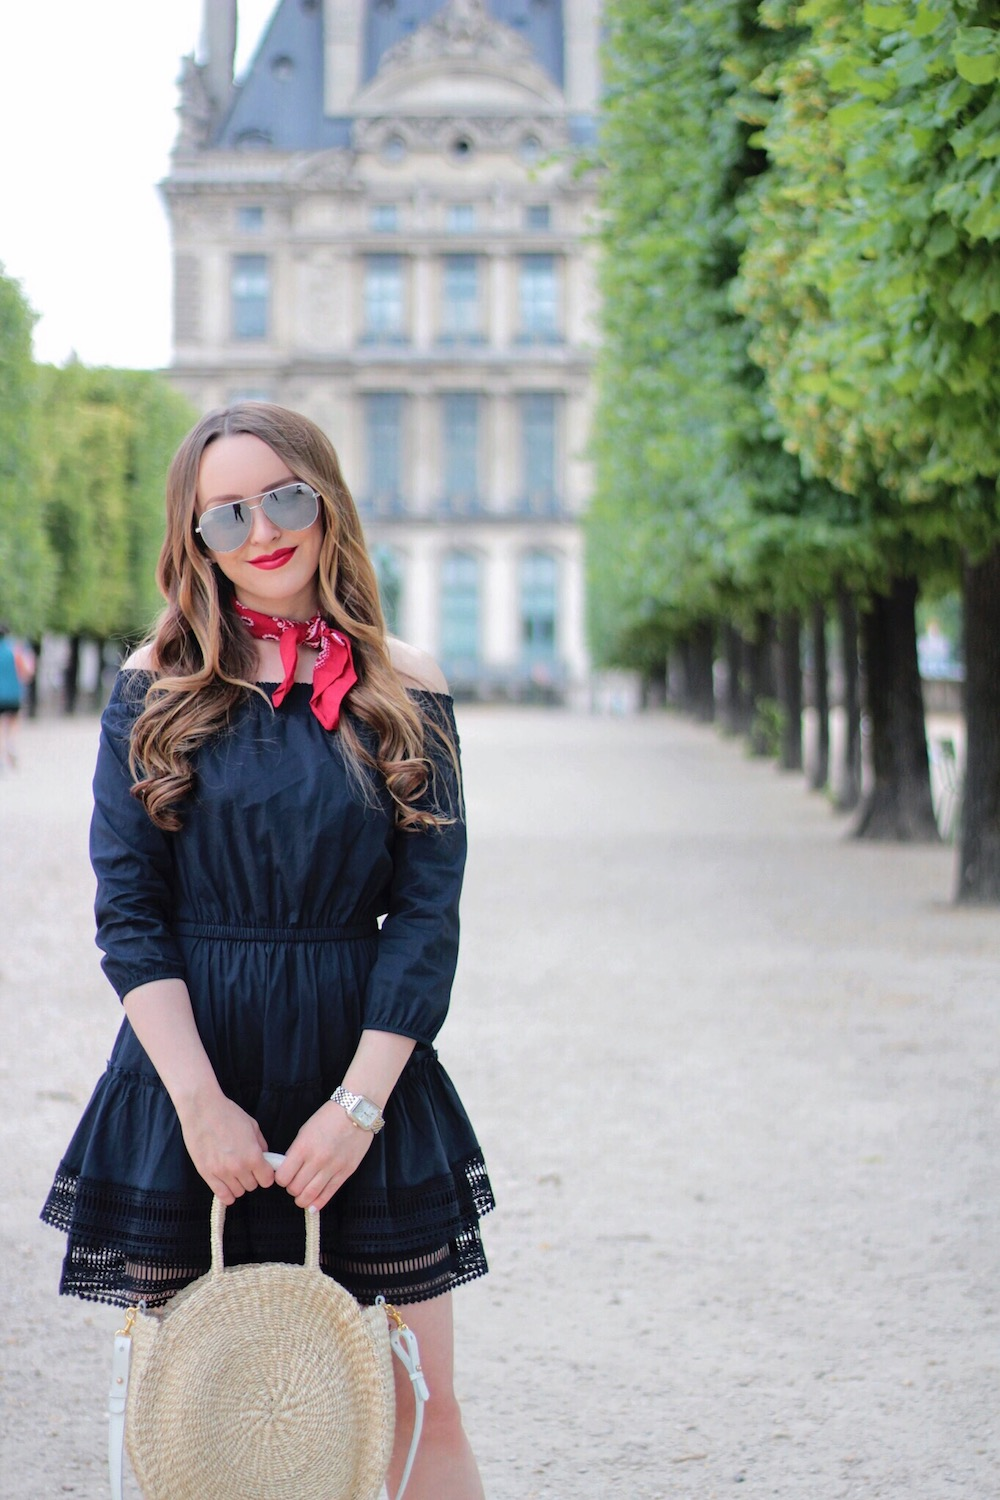 tuileries gardens travel tips rachel puccetti